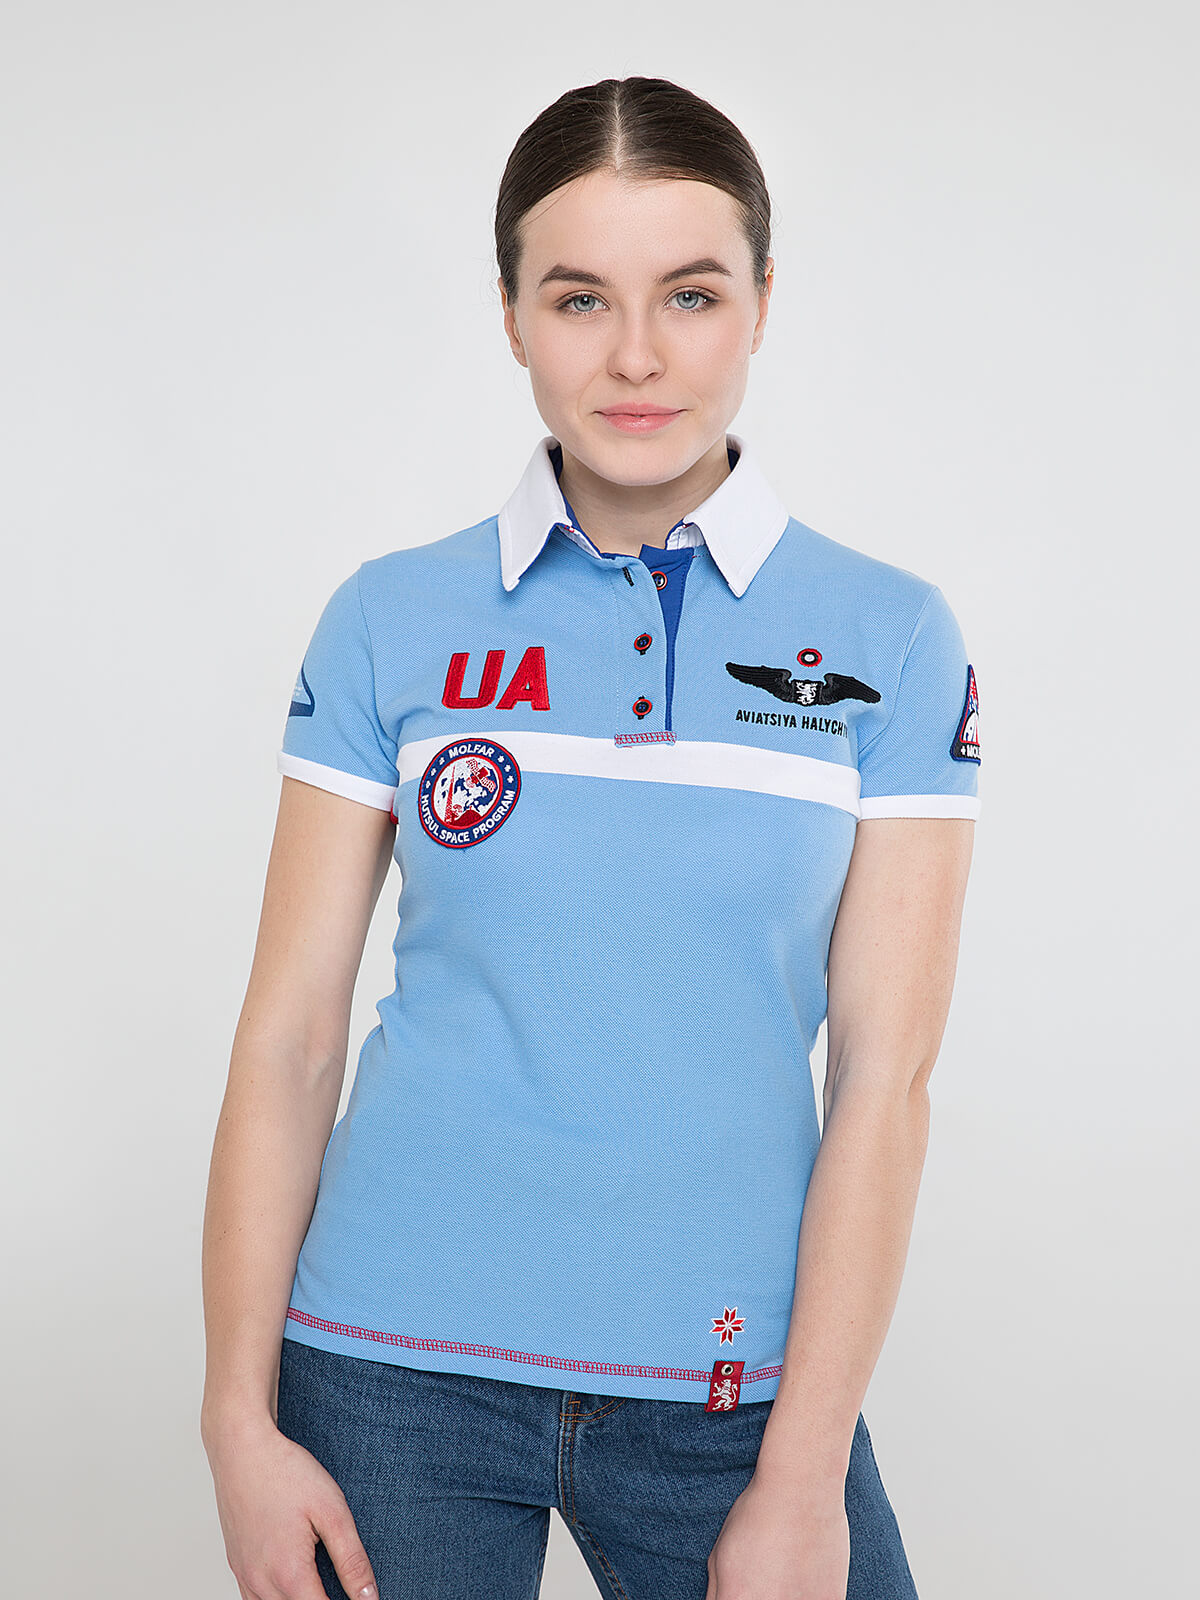 Women's Polo Shirt Molfar. Color sky blue. Pique fabric: 100% cotton.